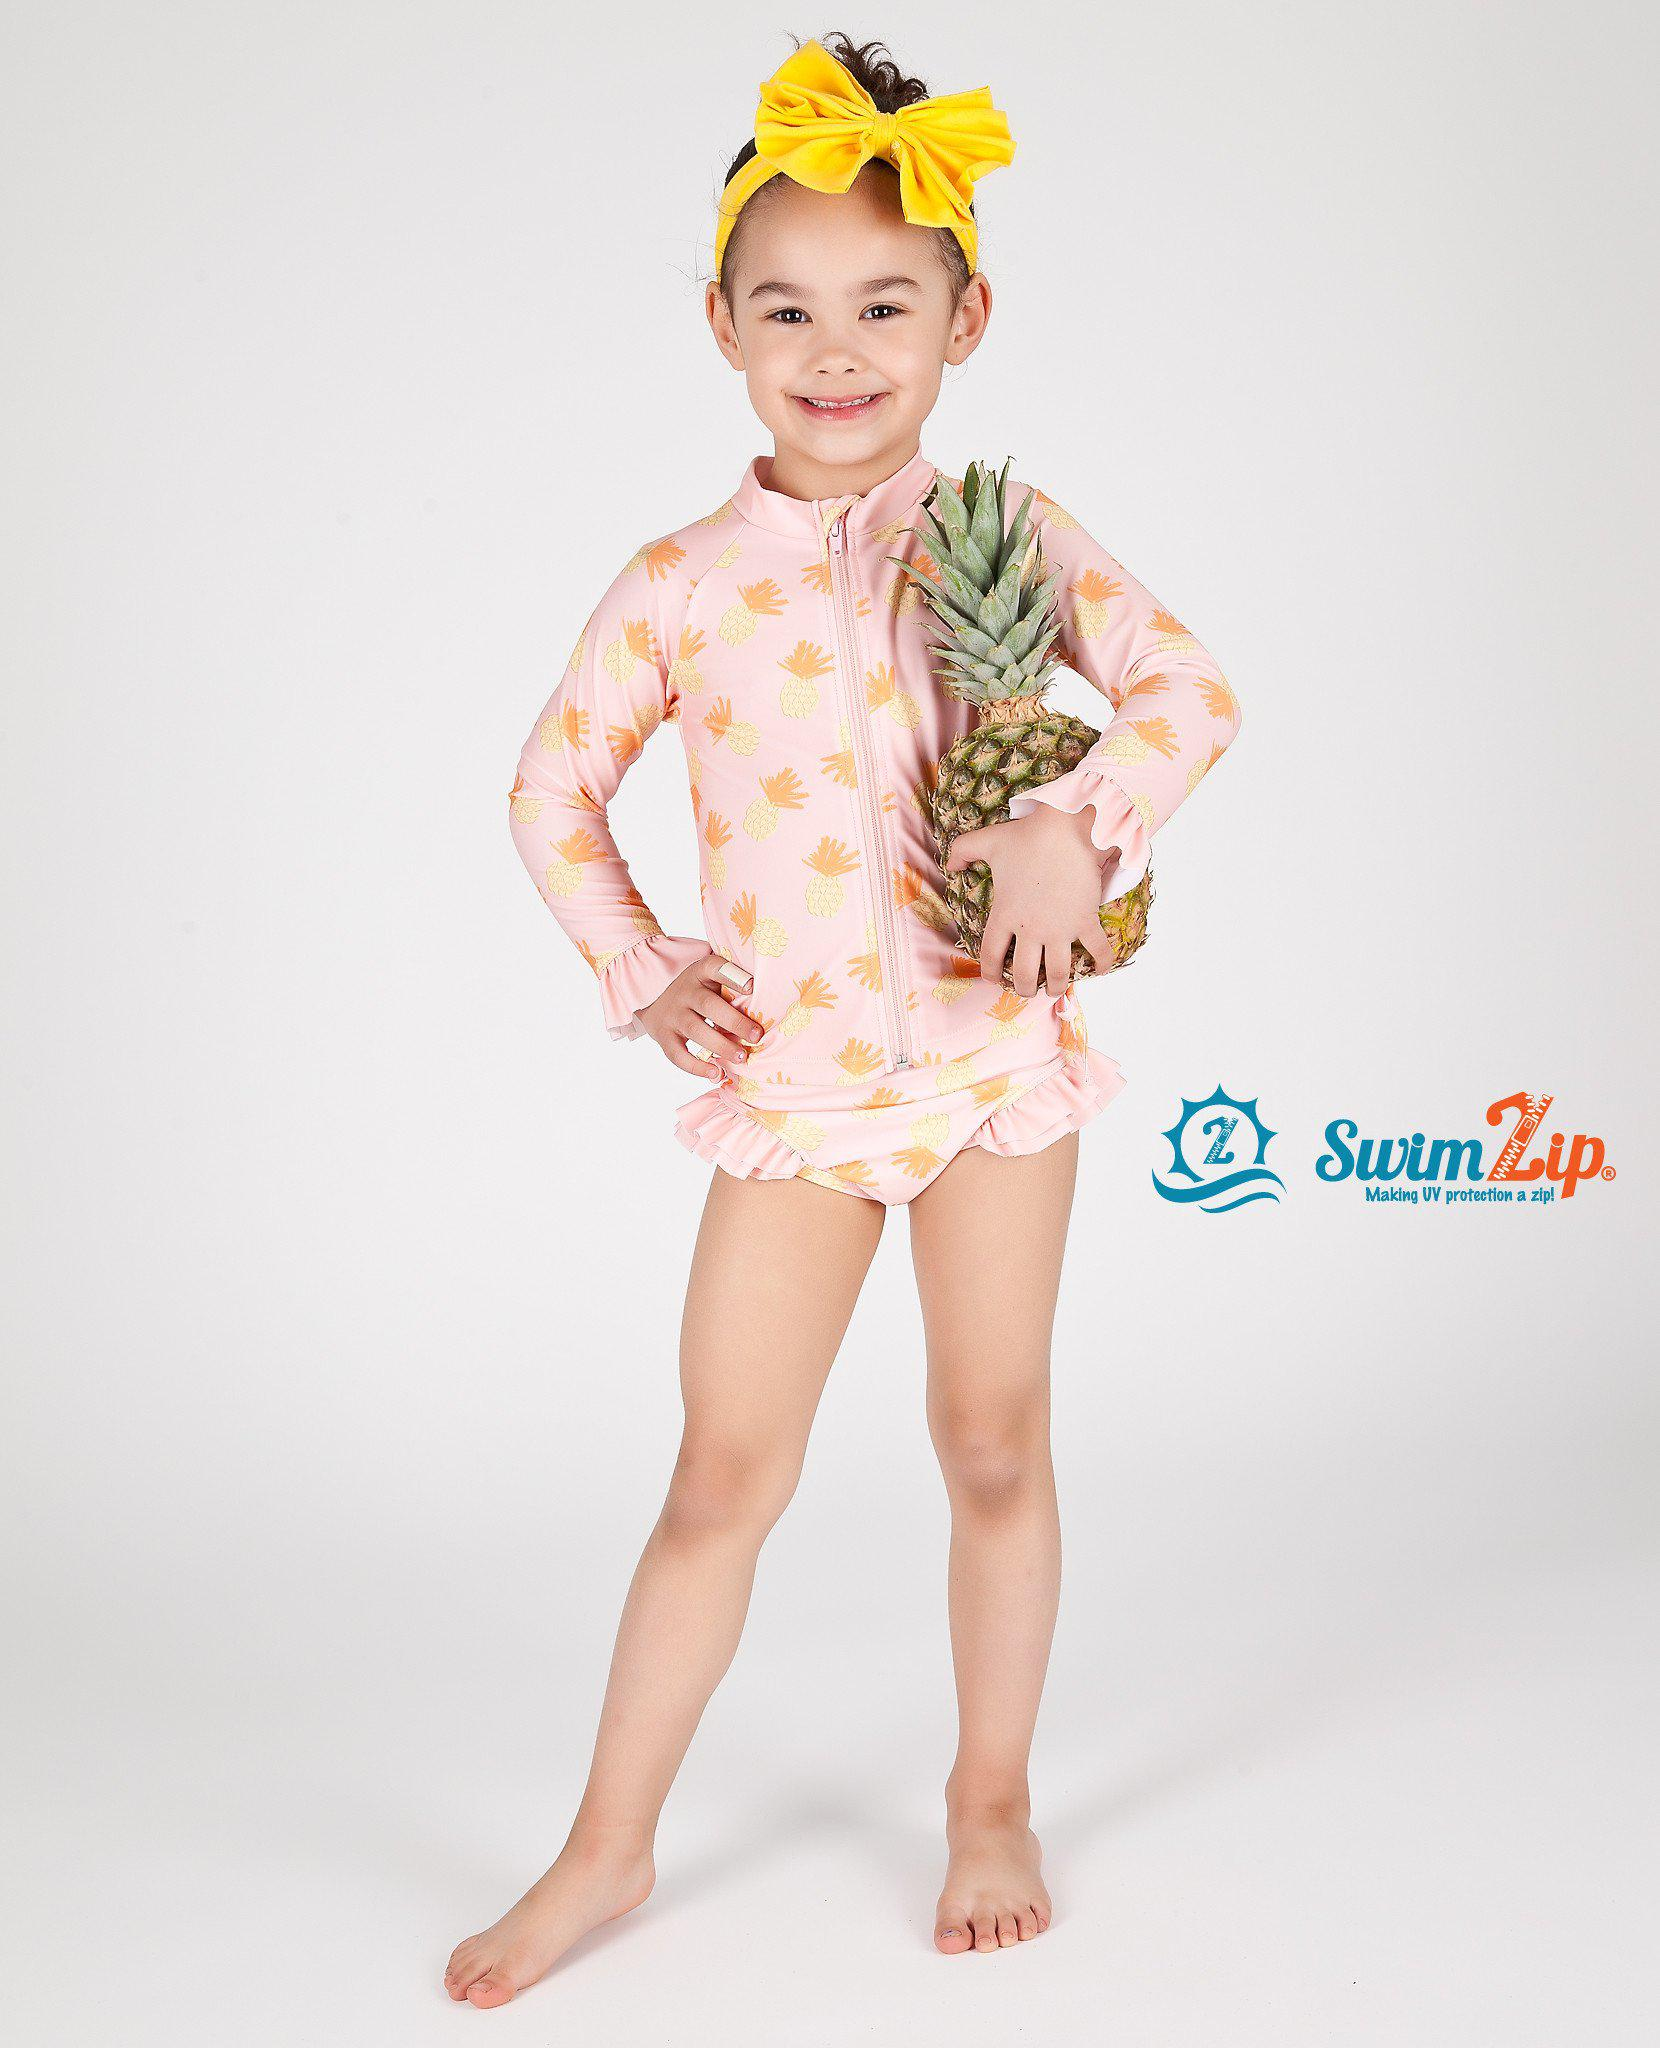 aa5c5641b6 Little Girl Long Sleeve Girl Rash Guard Swimsuit Set (2 Piece) -